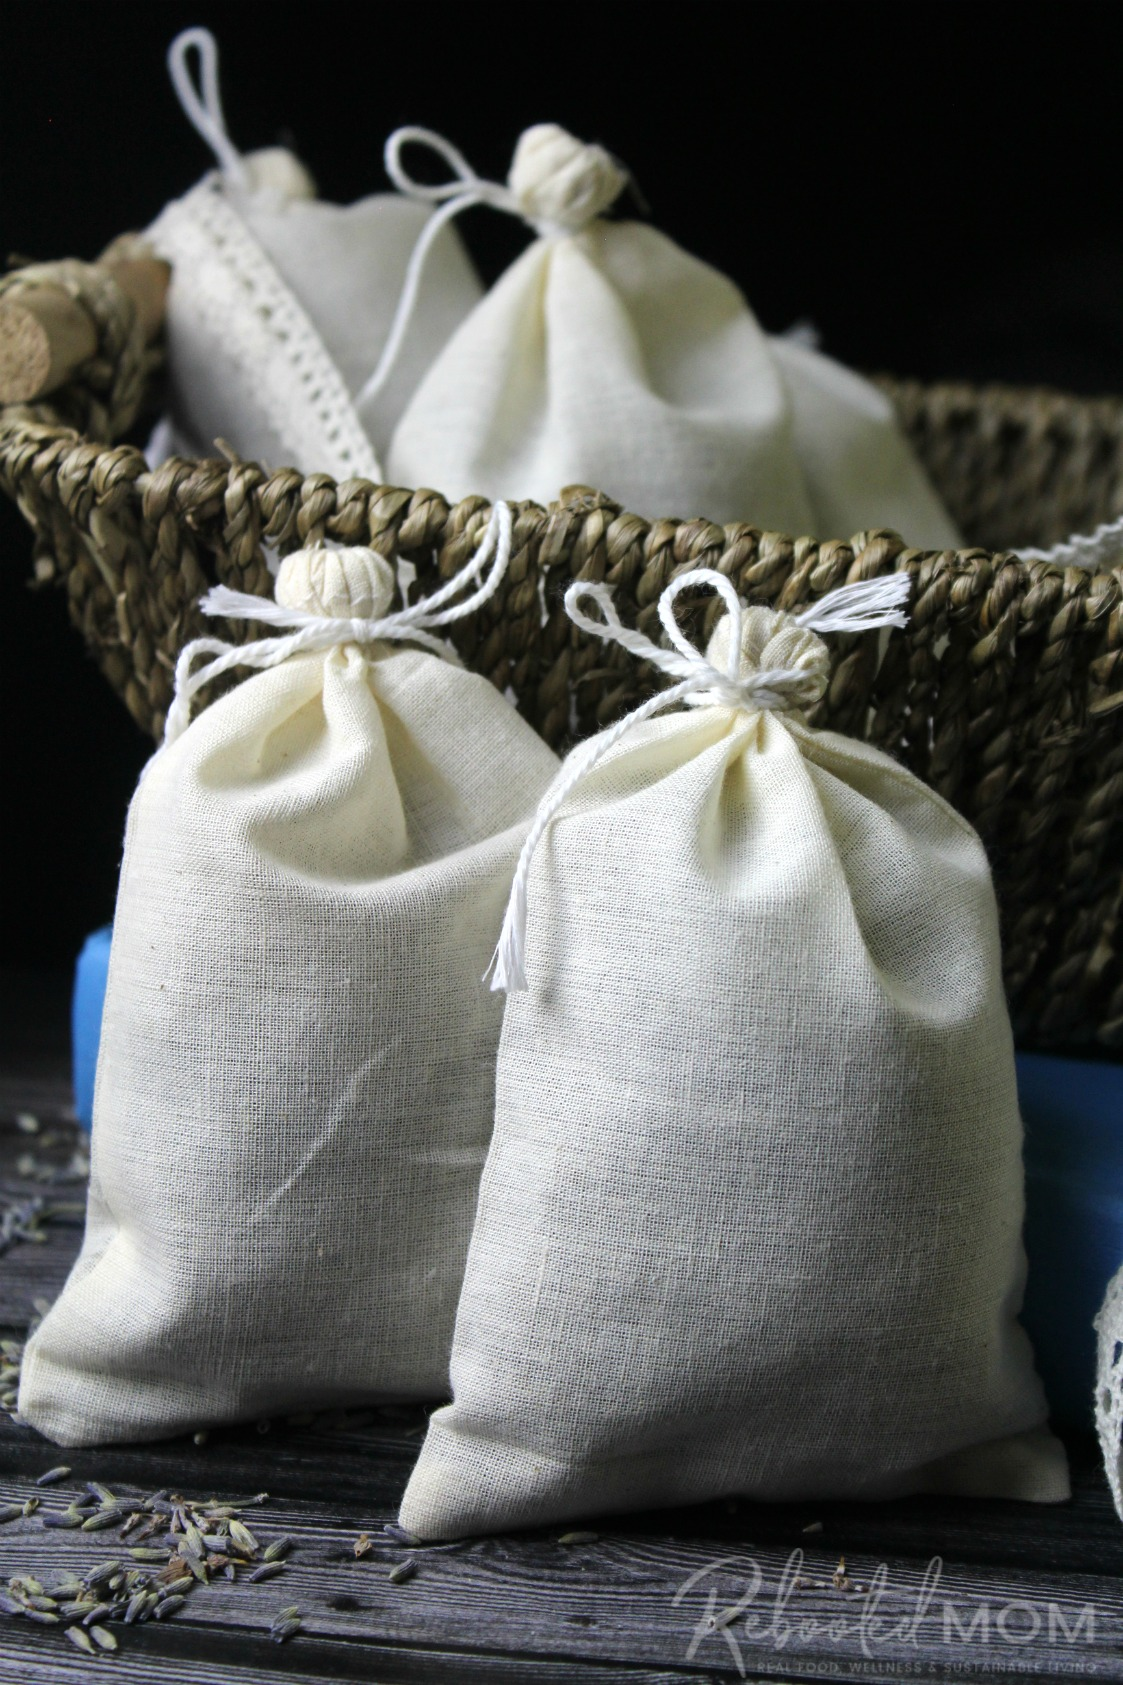 Unlabeled muslin bags filled with herbs \\ These herbal dryer sachets are a beautiful and healthy way to scent your laundry and they make wonderful gifts for friends, co-workers and even teachers!